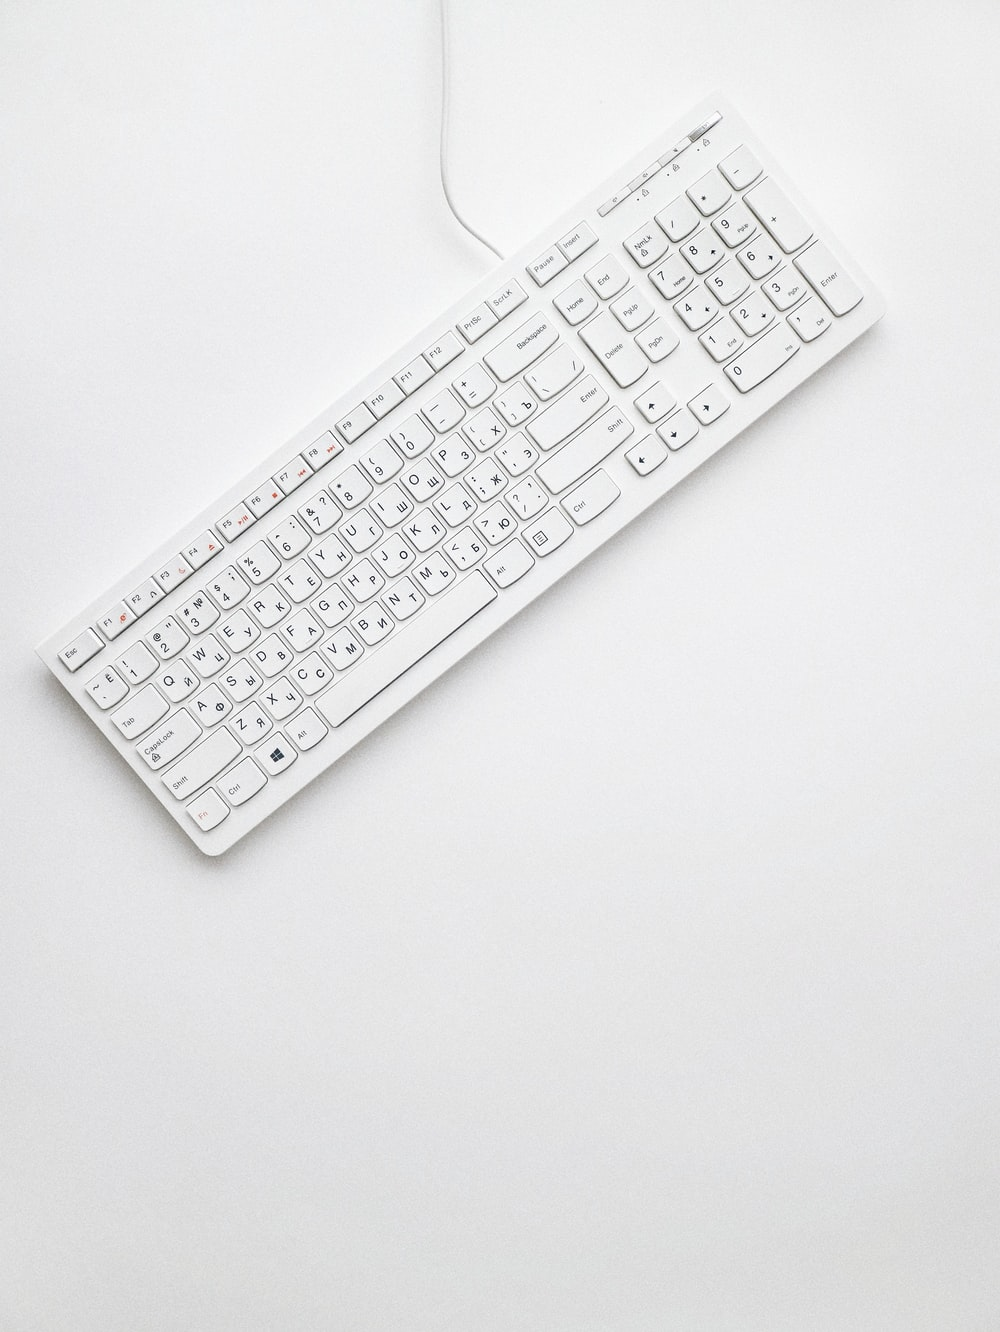 white corded computer keyboard on white surface